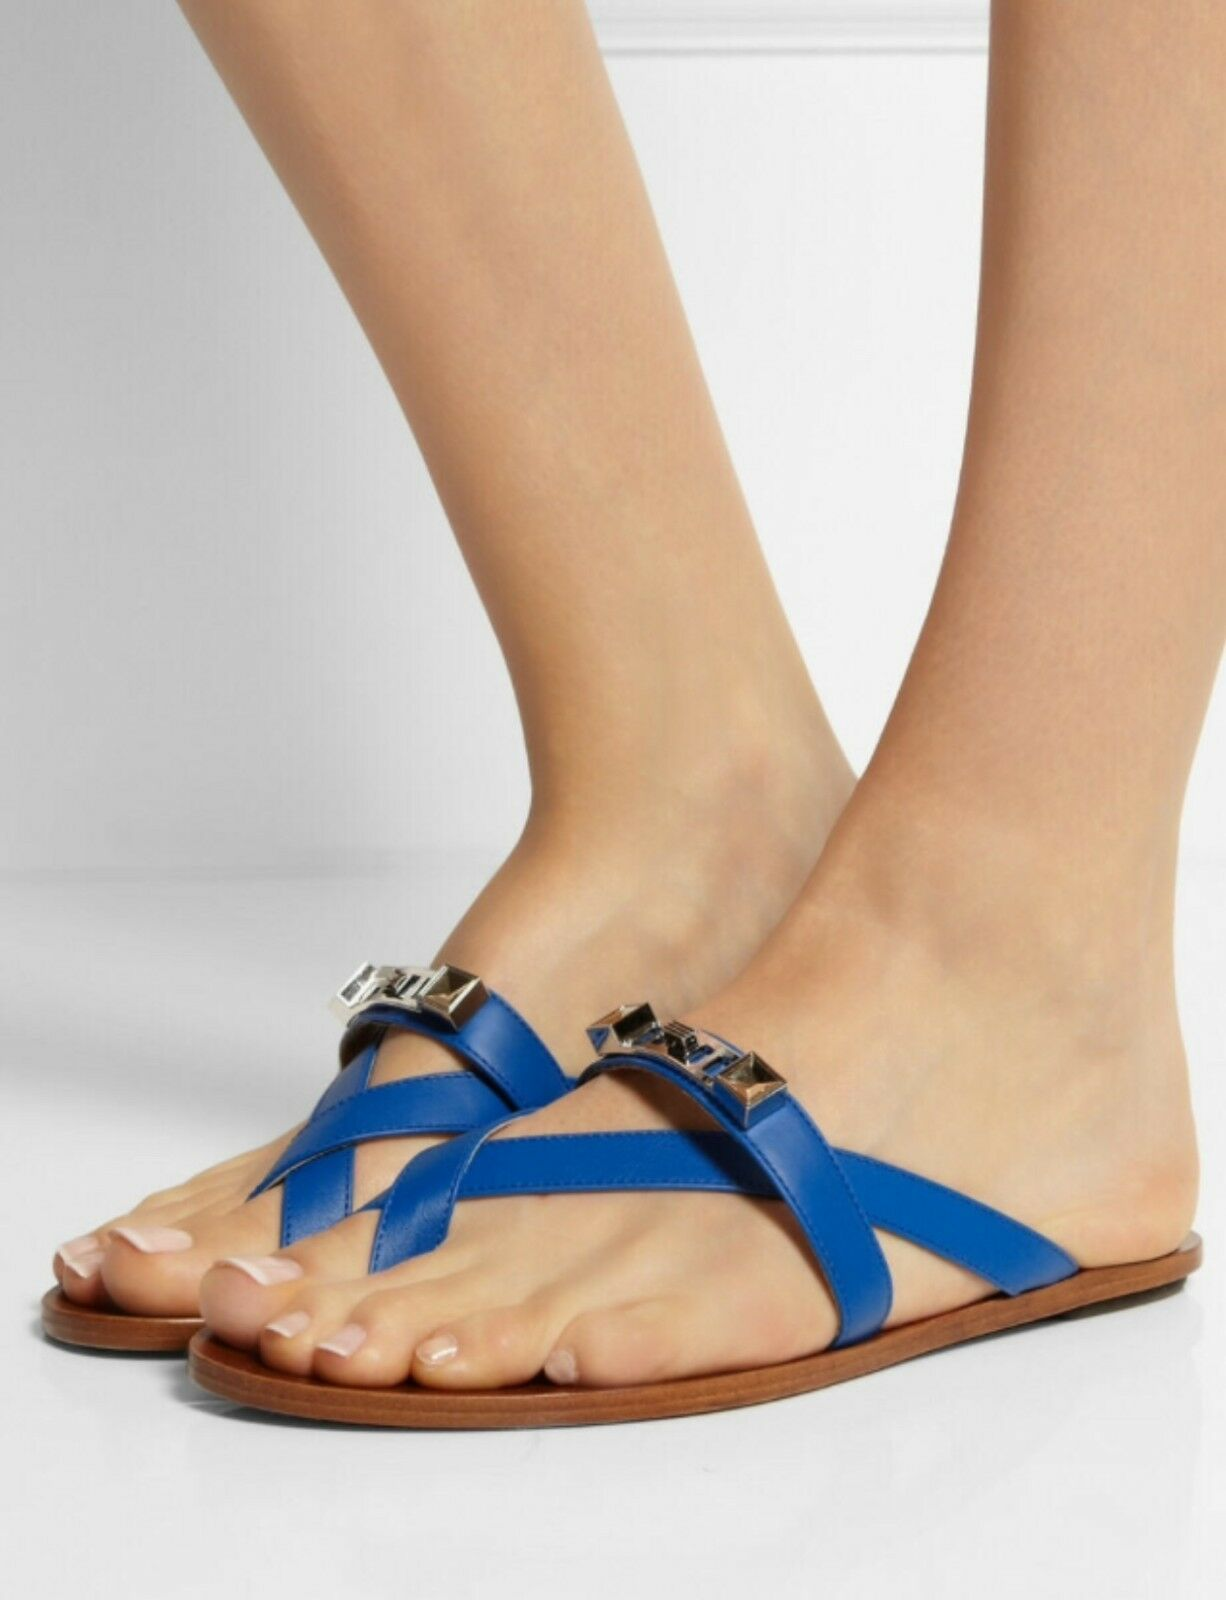 Proenza Schouler leather sandals size Italy 36